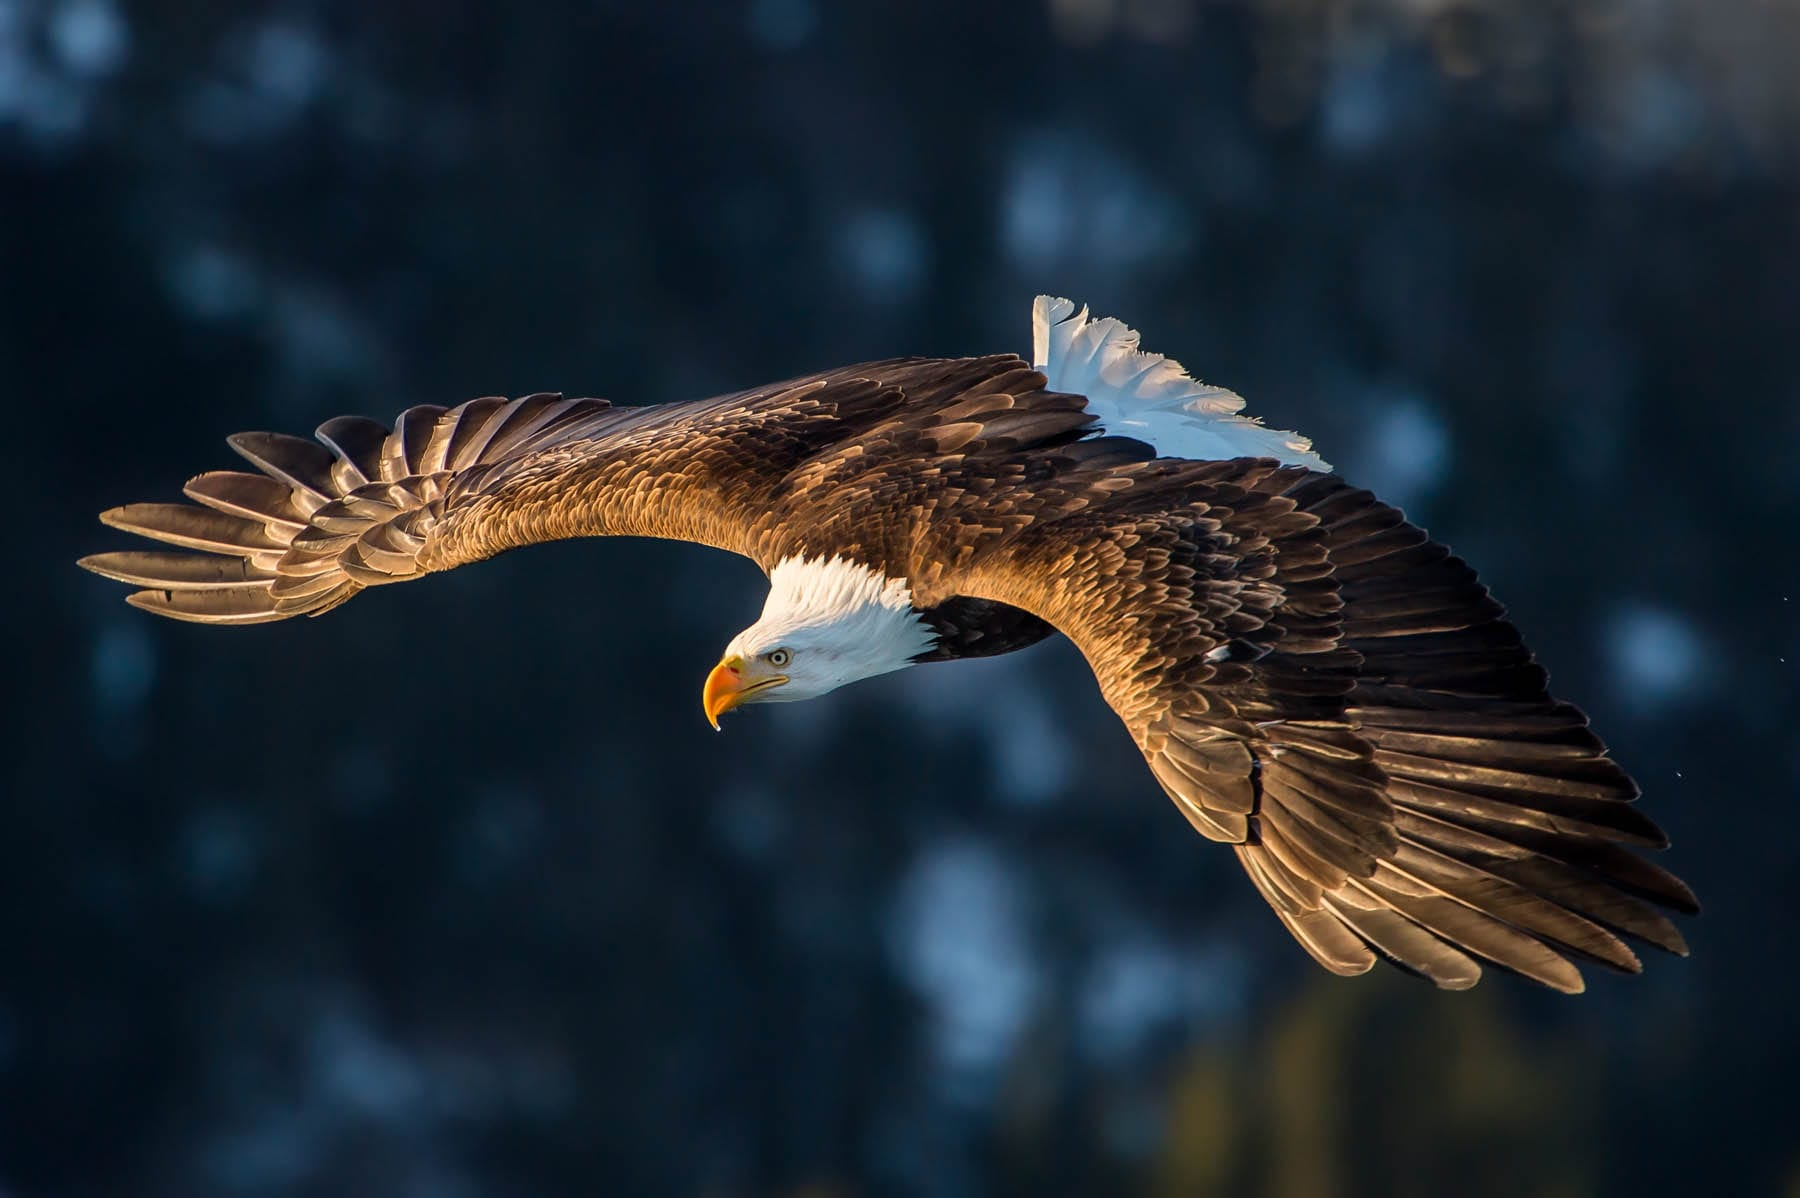 Bald eagle soaring.